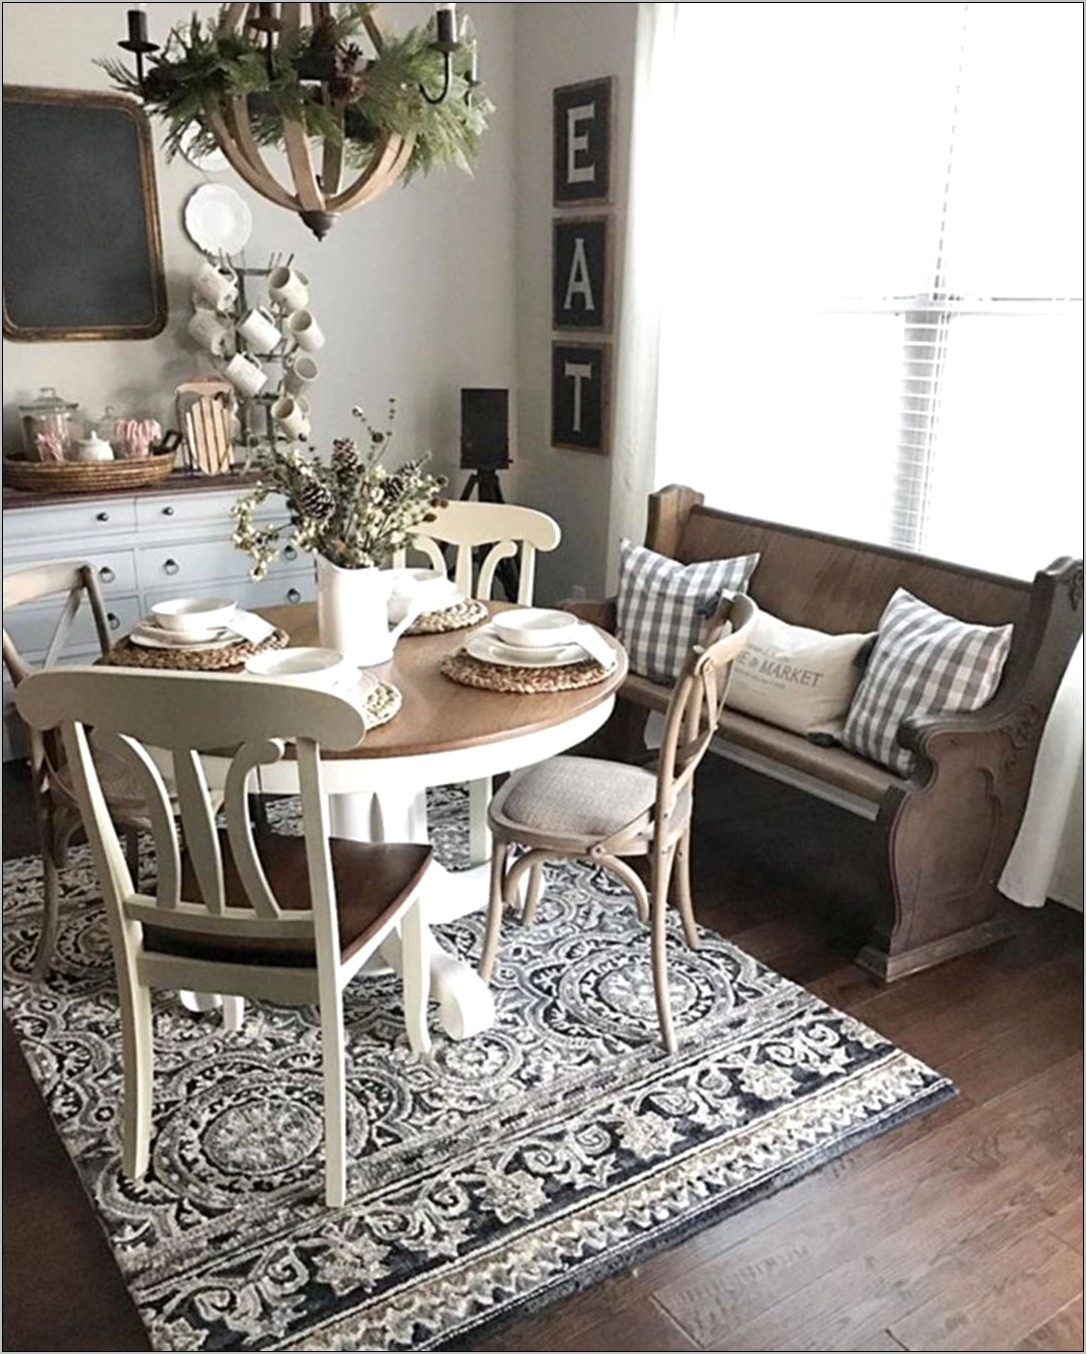 Vintage Decorations For Dining Room